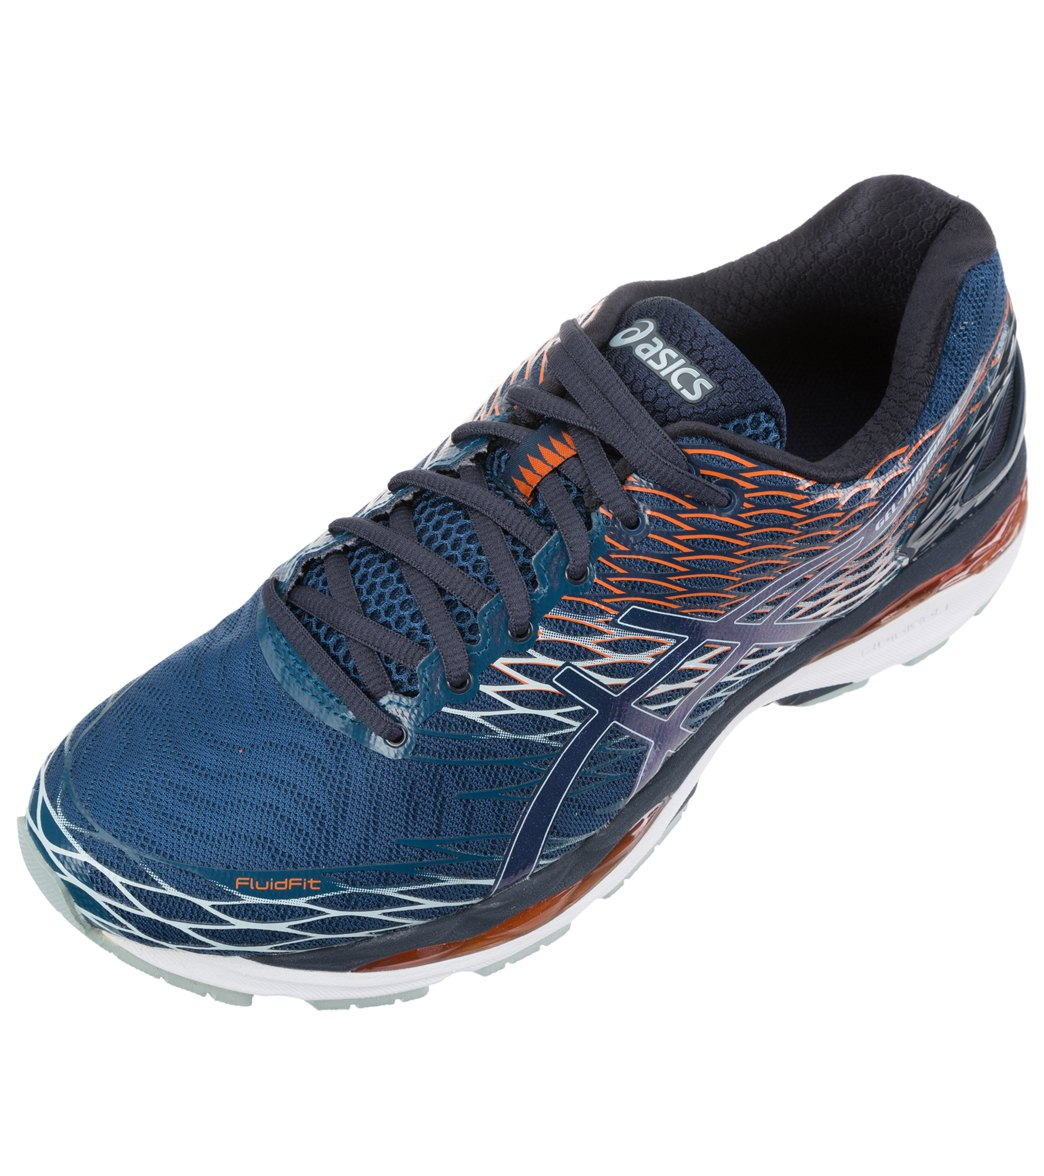 33aff8d6897d Asics Men s GEL-Nimbus 18 Running Shoes at SwimOutlet.com - Free Shipping